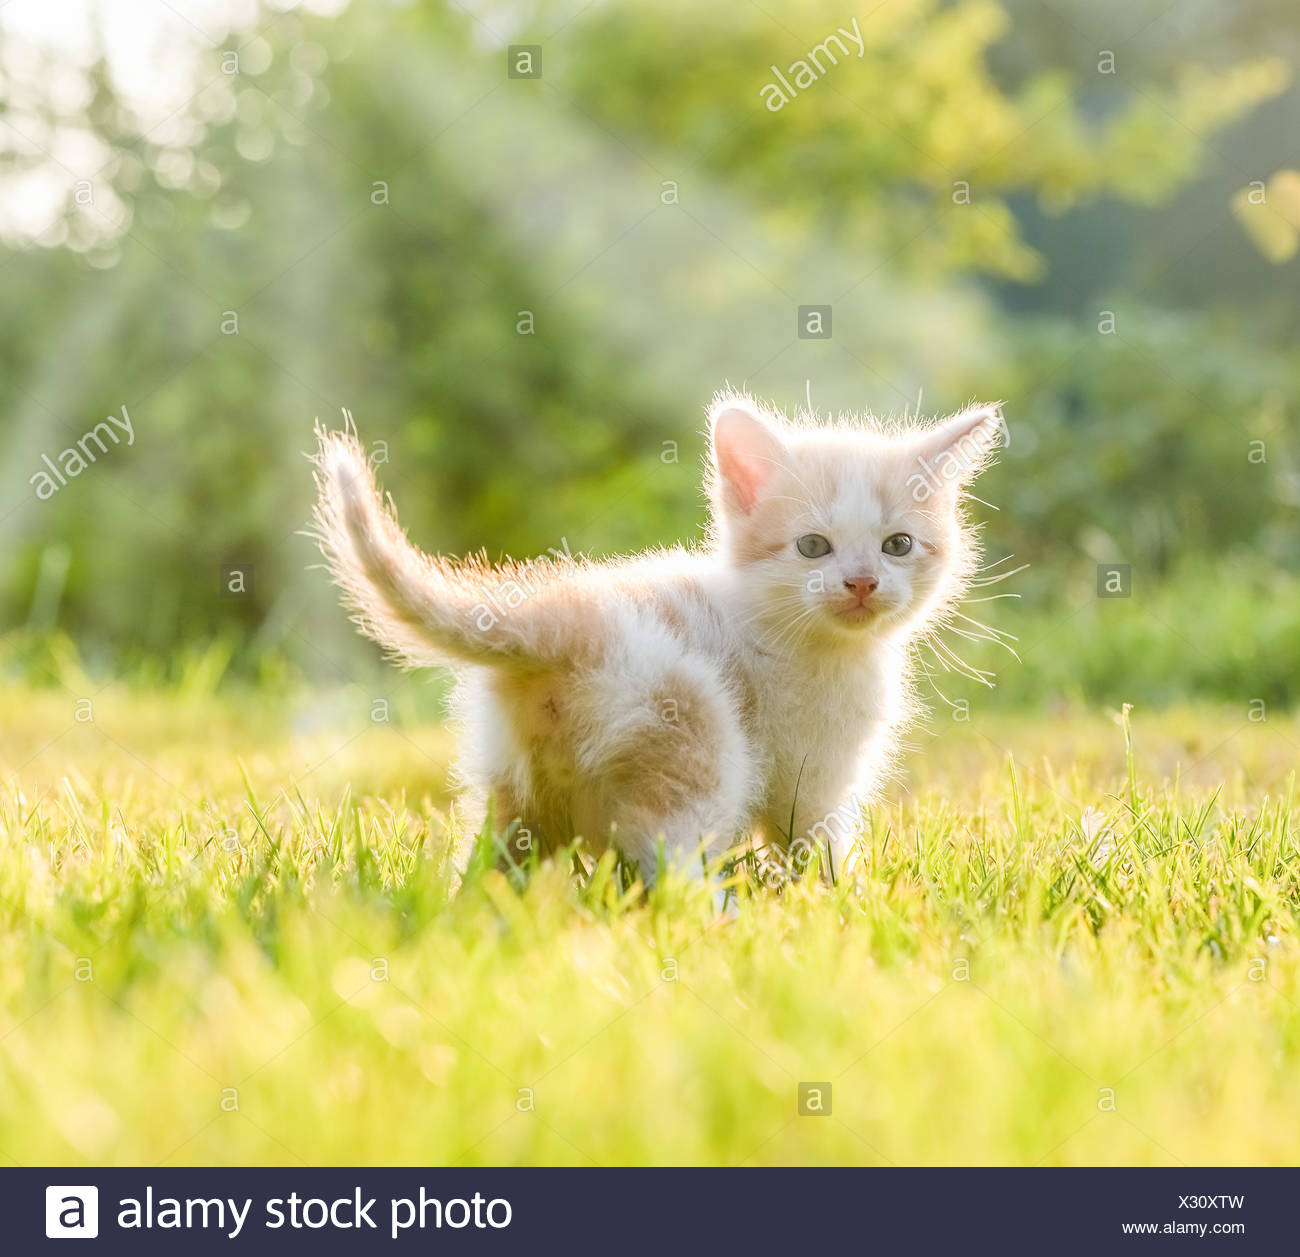 little kittens - Stock Image